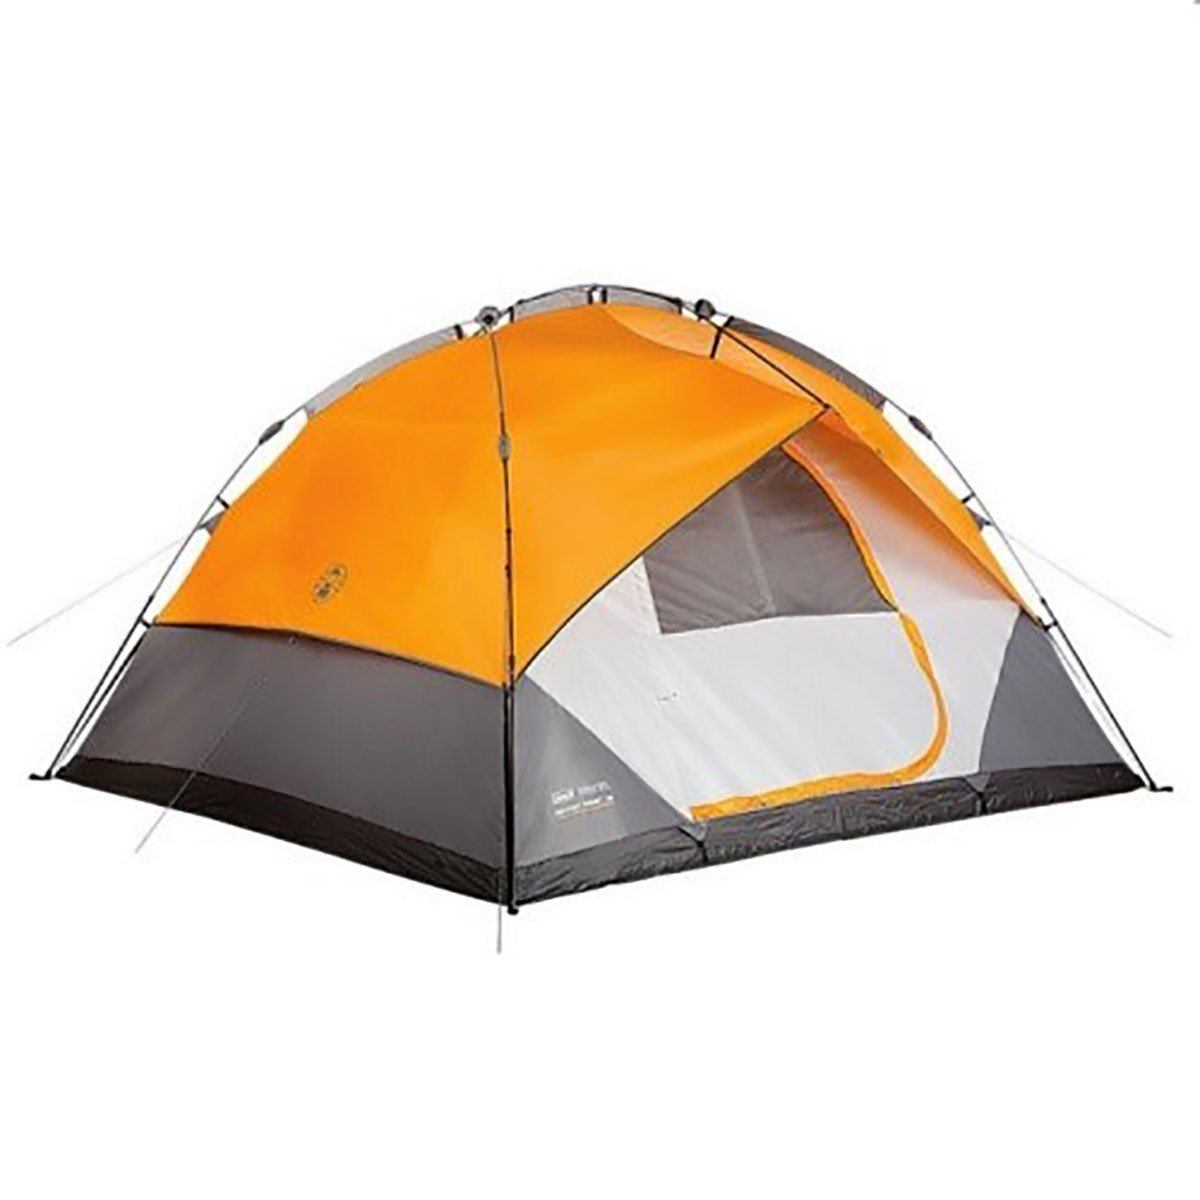 Coleman Instant Dome 7 Tent テント【コールマン】   B00I2SWXI4